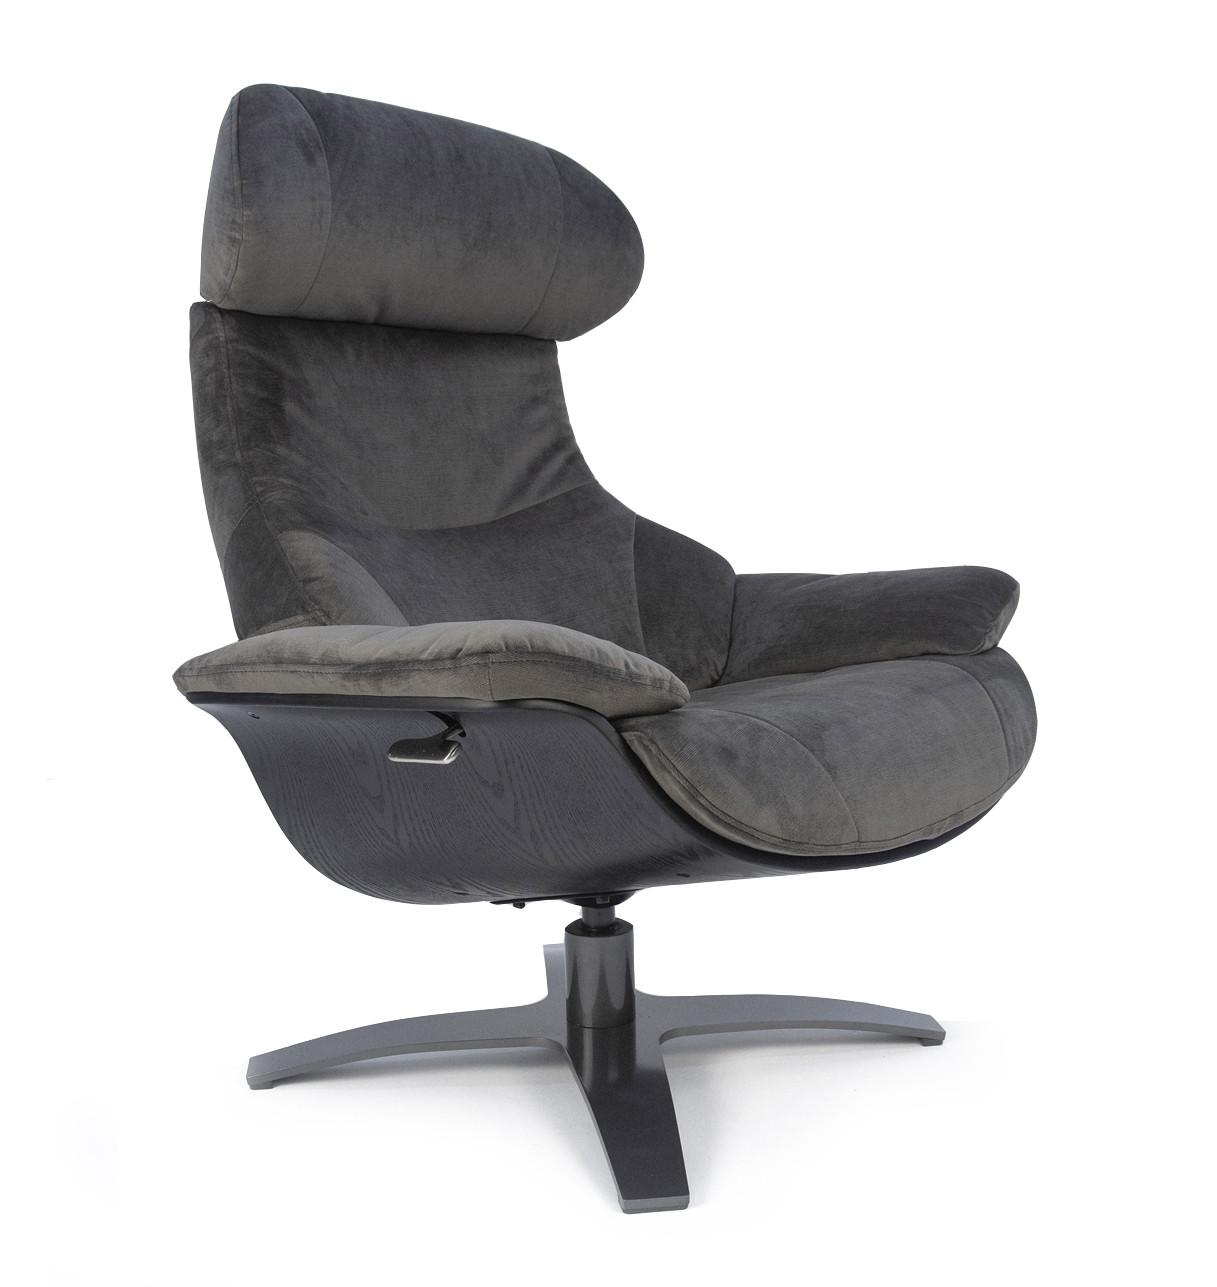 ANTARES - Brown Velvet & Black Oakwood Relax Chair